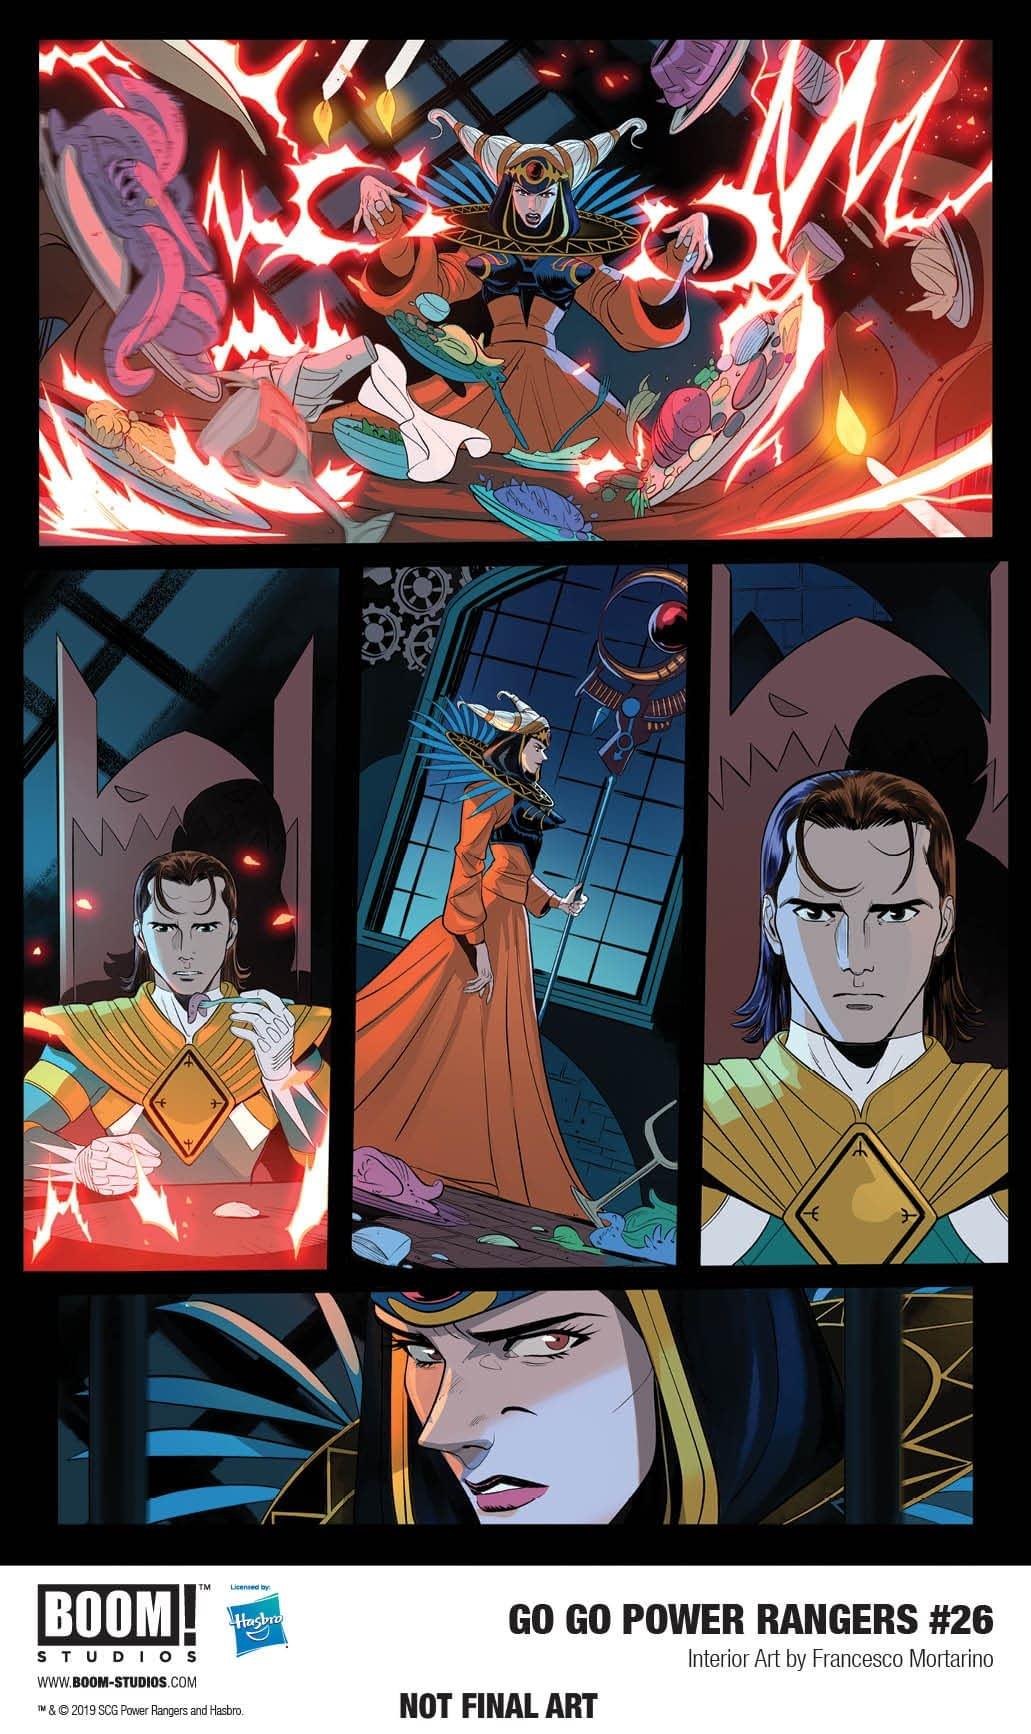 3 Pages from December's Go Go Power Rangers #36